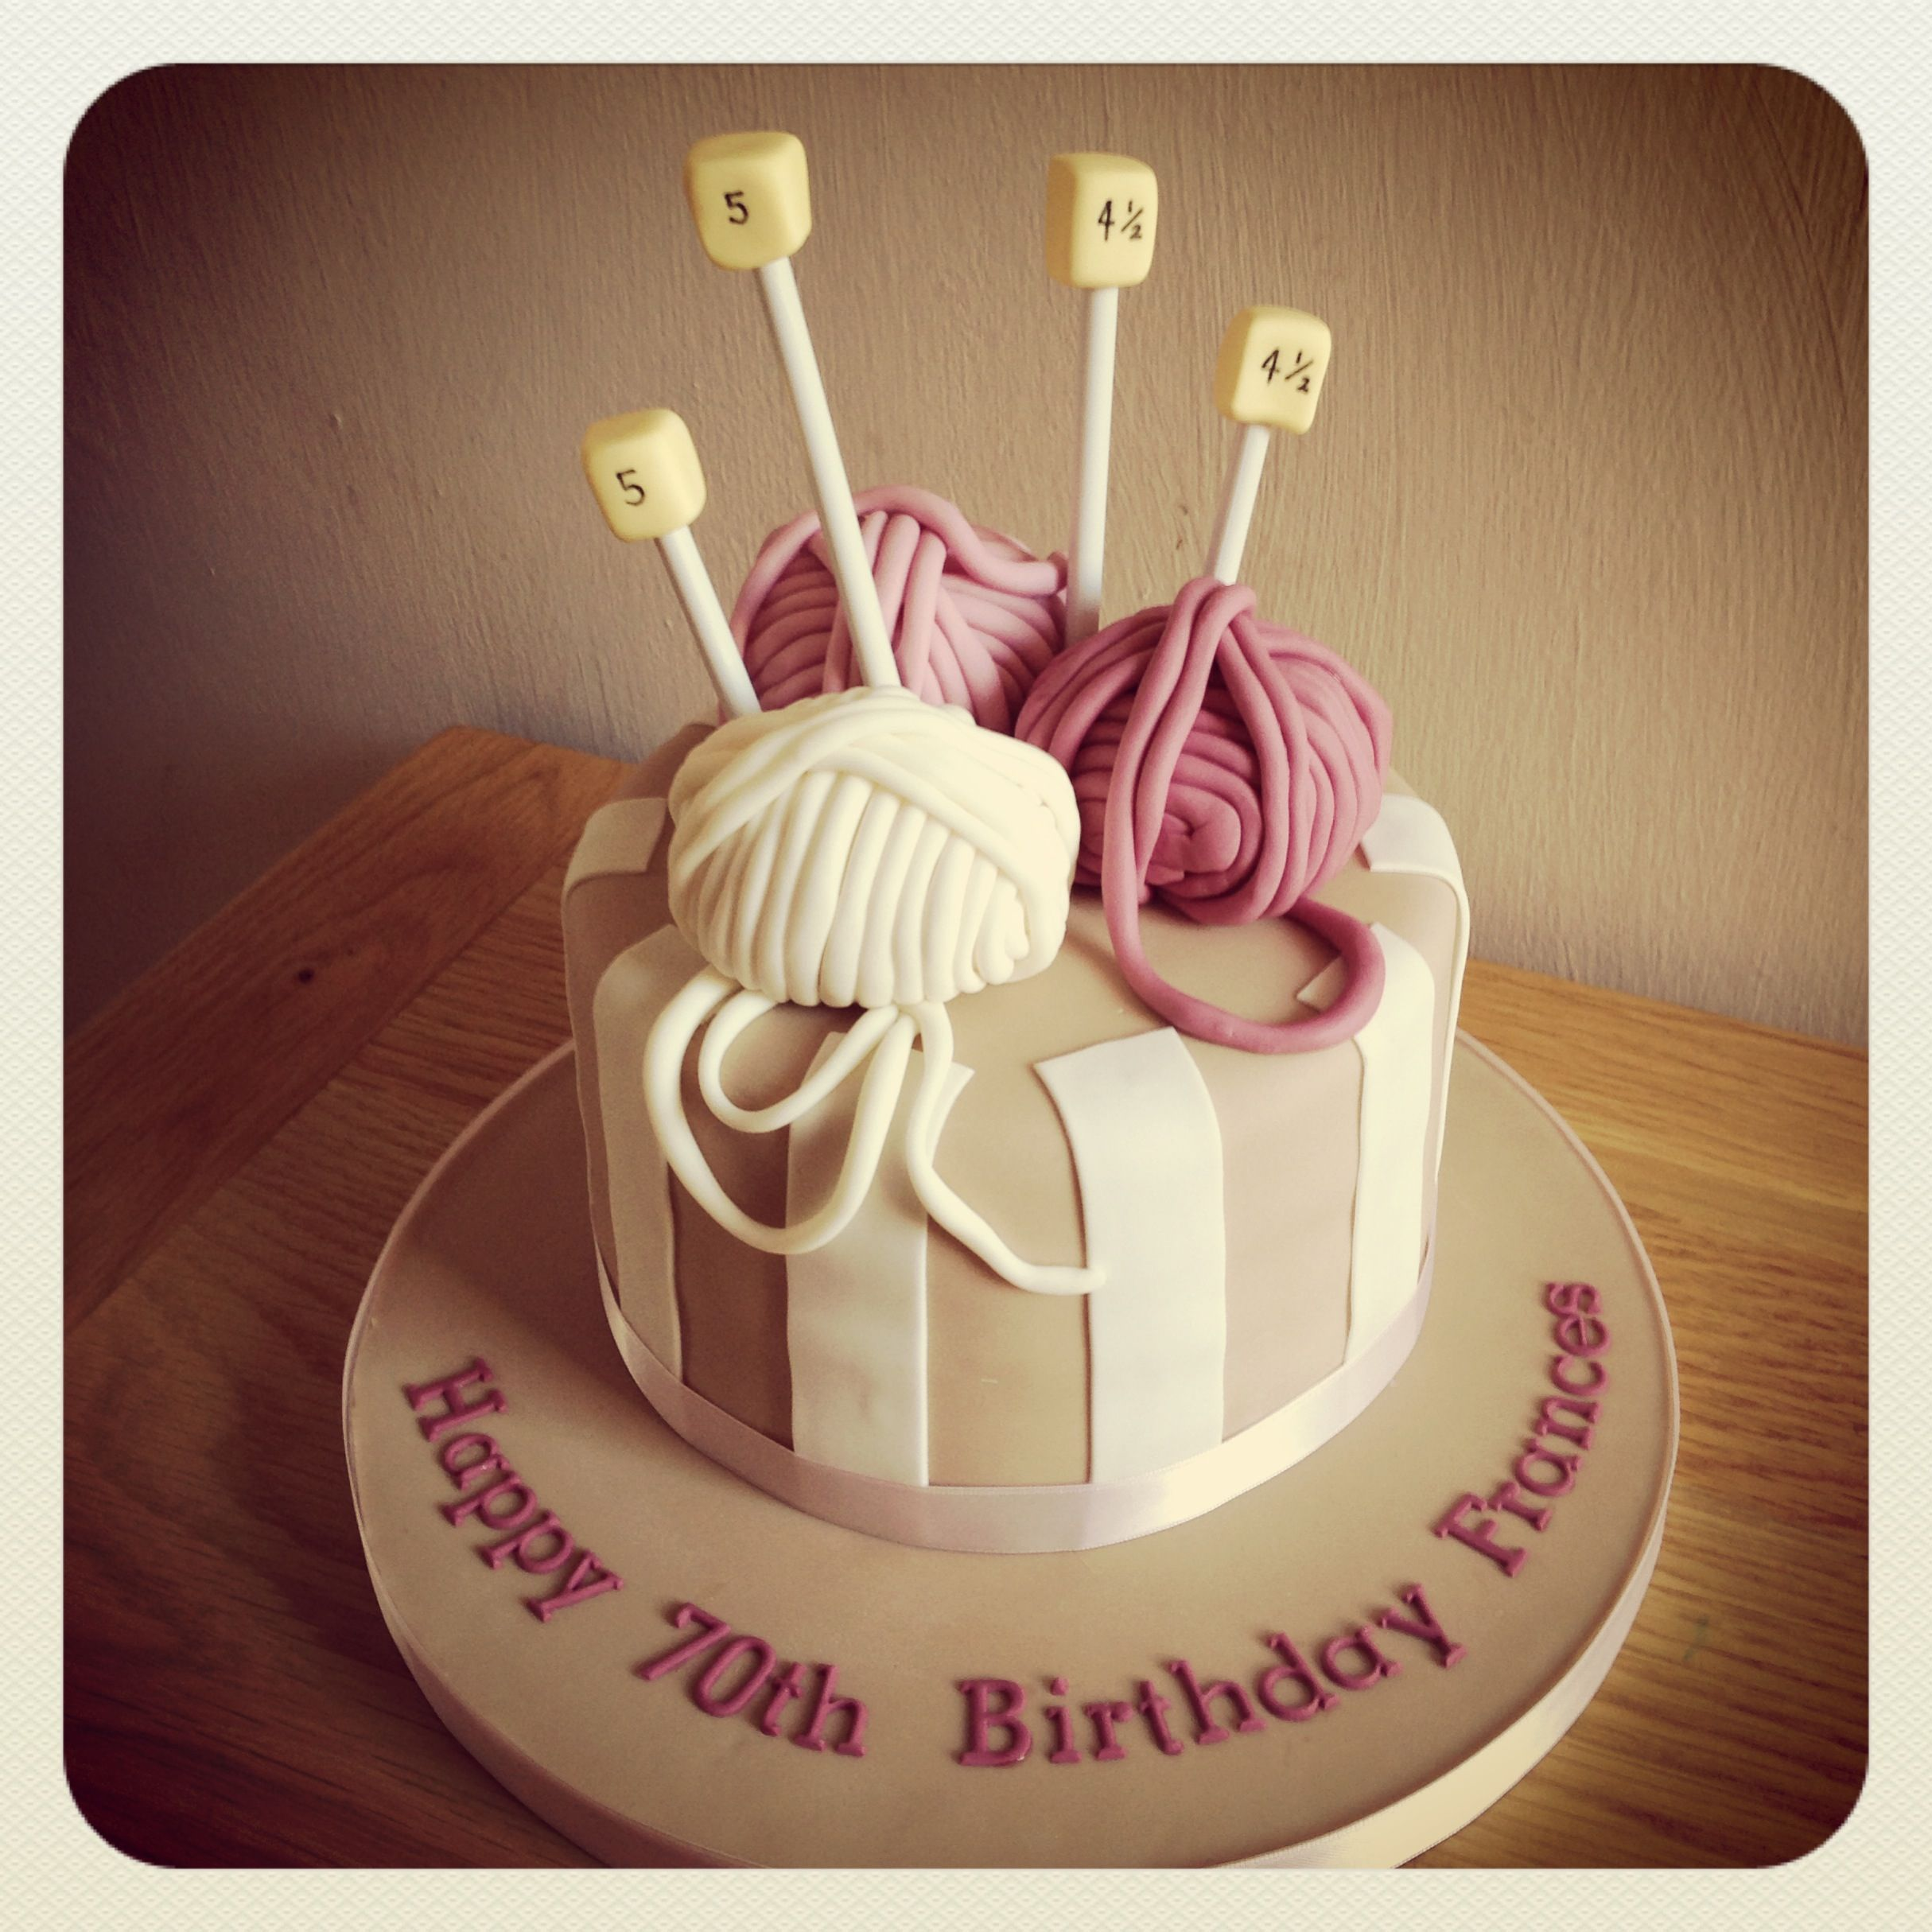 Knitting Birthday Images : Knitting themed birthday cake lemon drizzle filled with